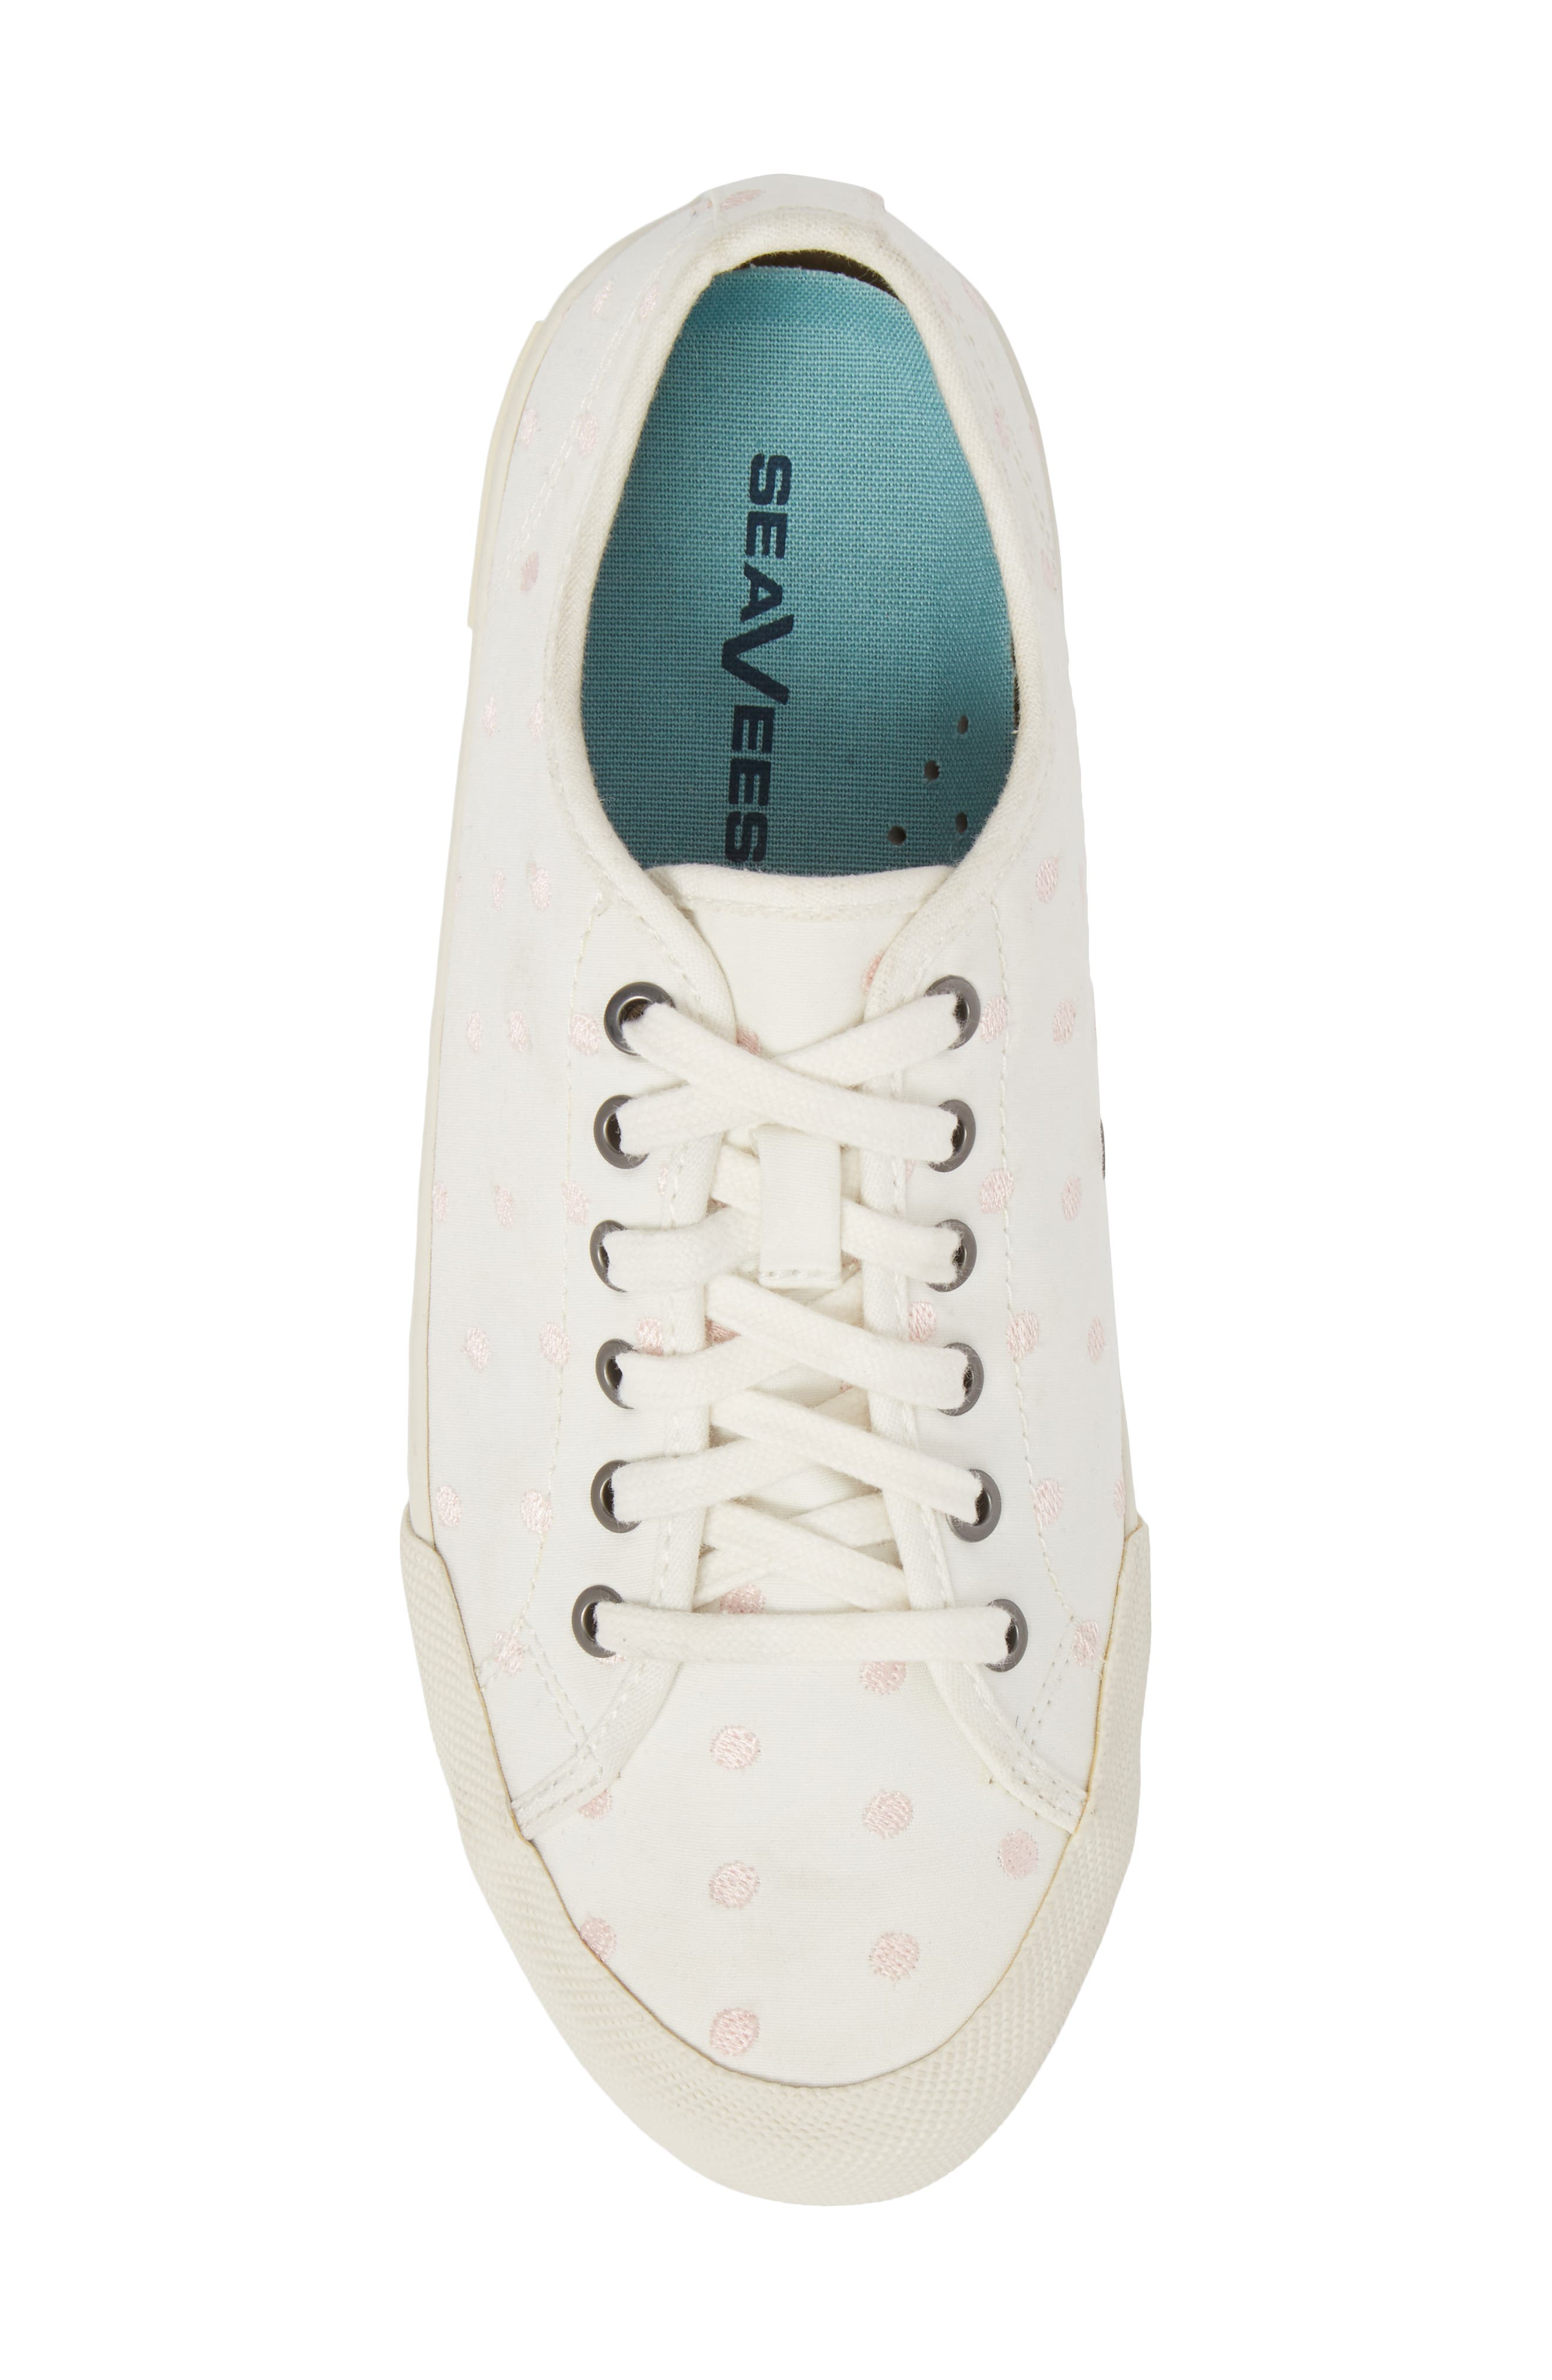 Monterey Embroidered Low Top Sneaker,                             Alternate thumbnail 5, color,                             PEARL